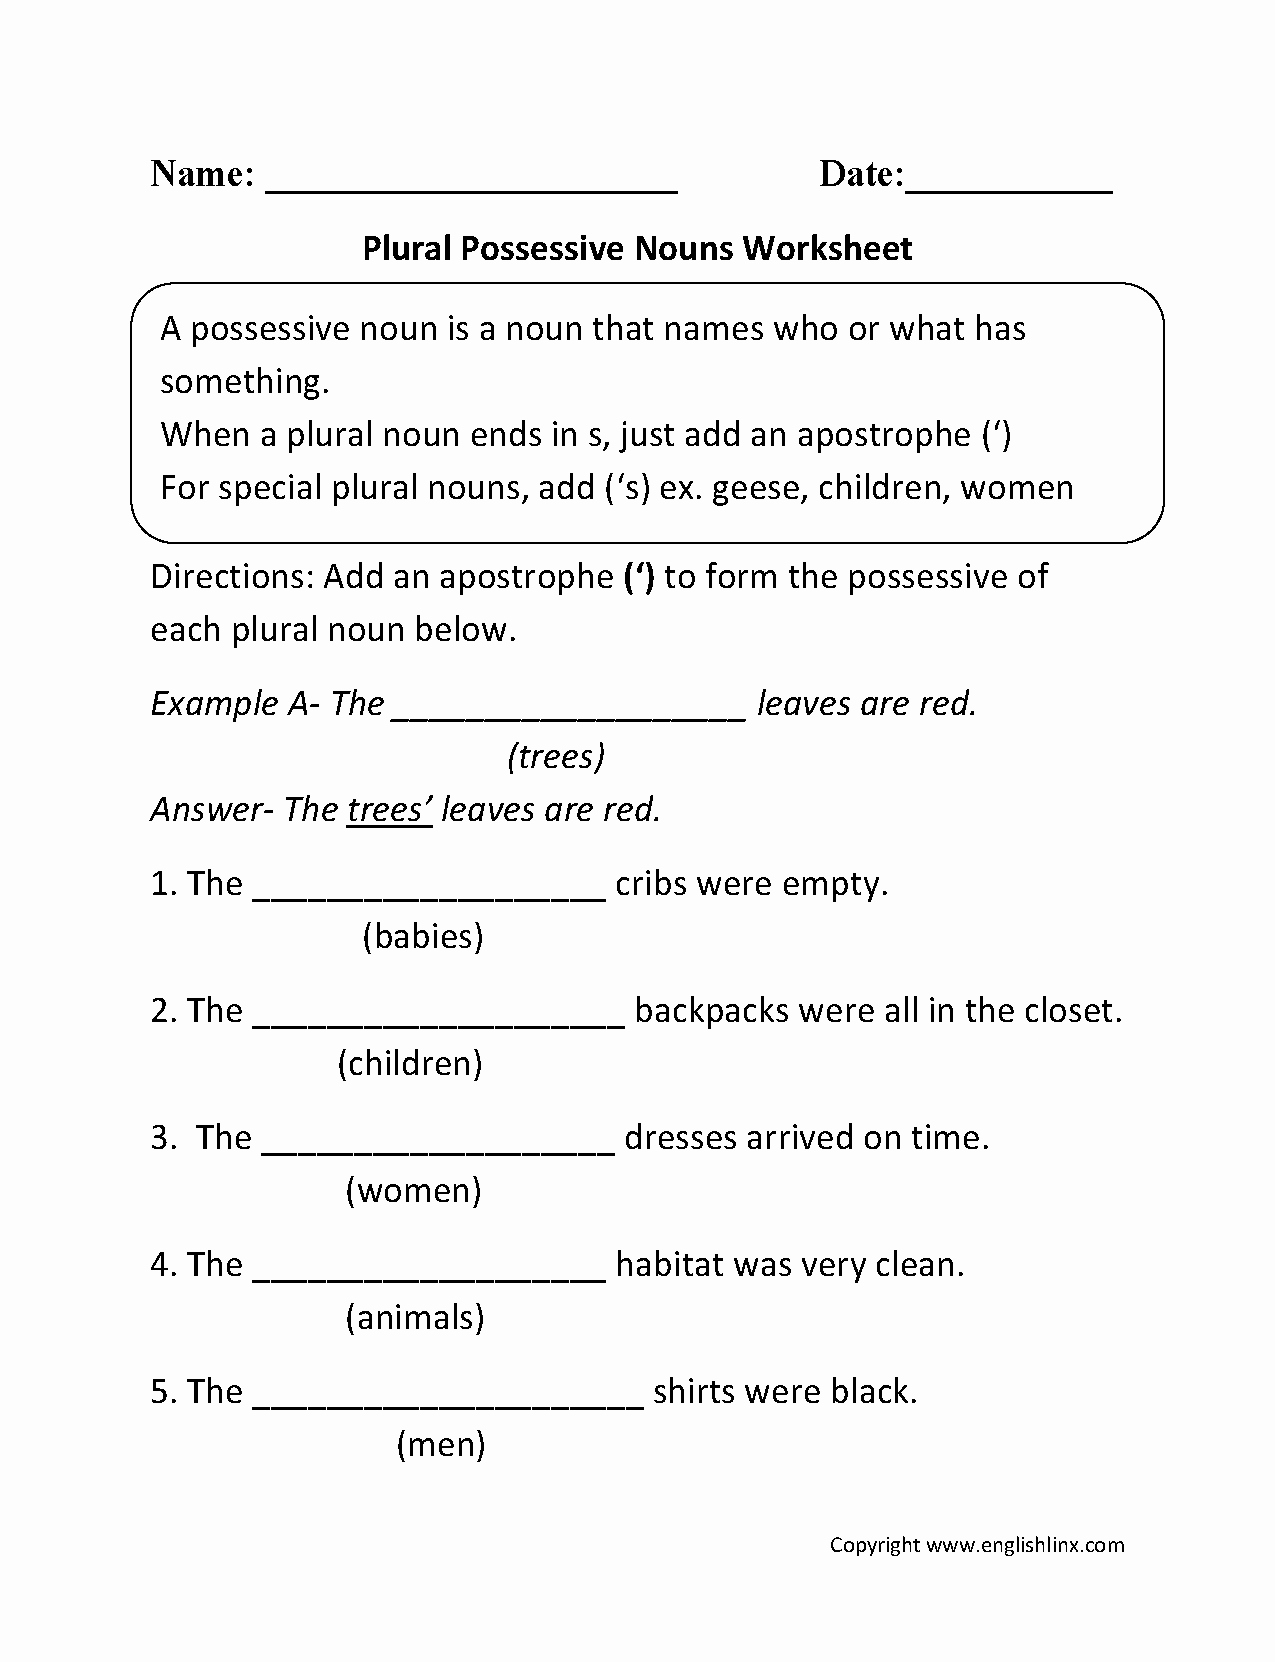 Singular Possessive Nouns Worksheet Elegant Pin On 4th Grade